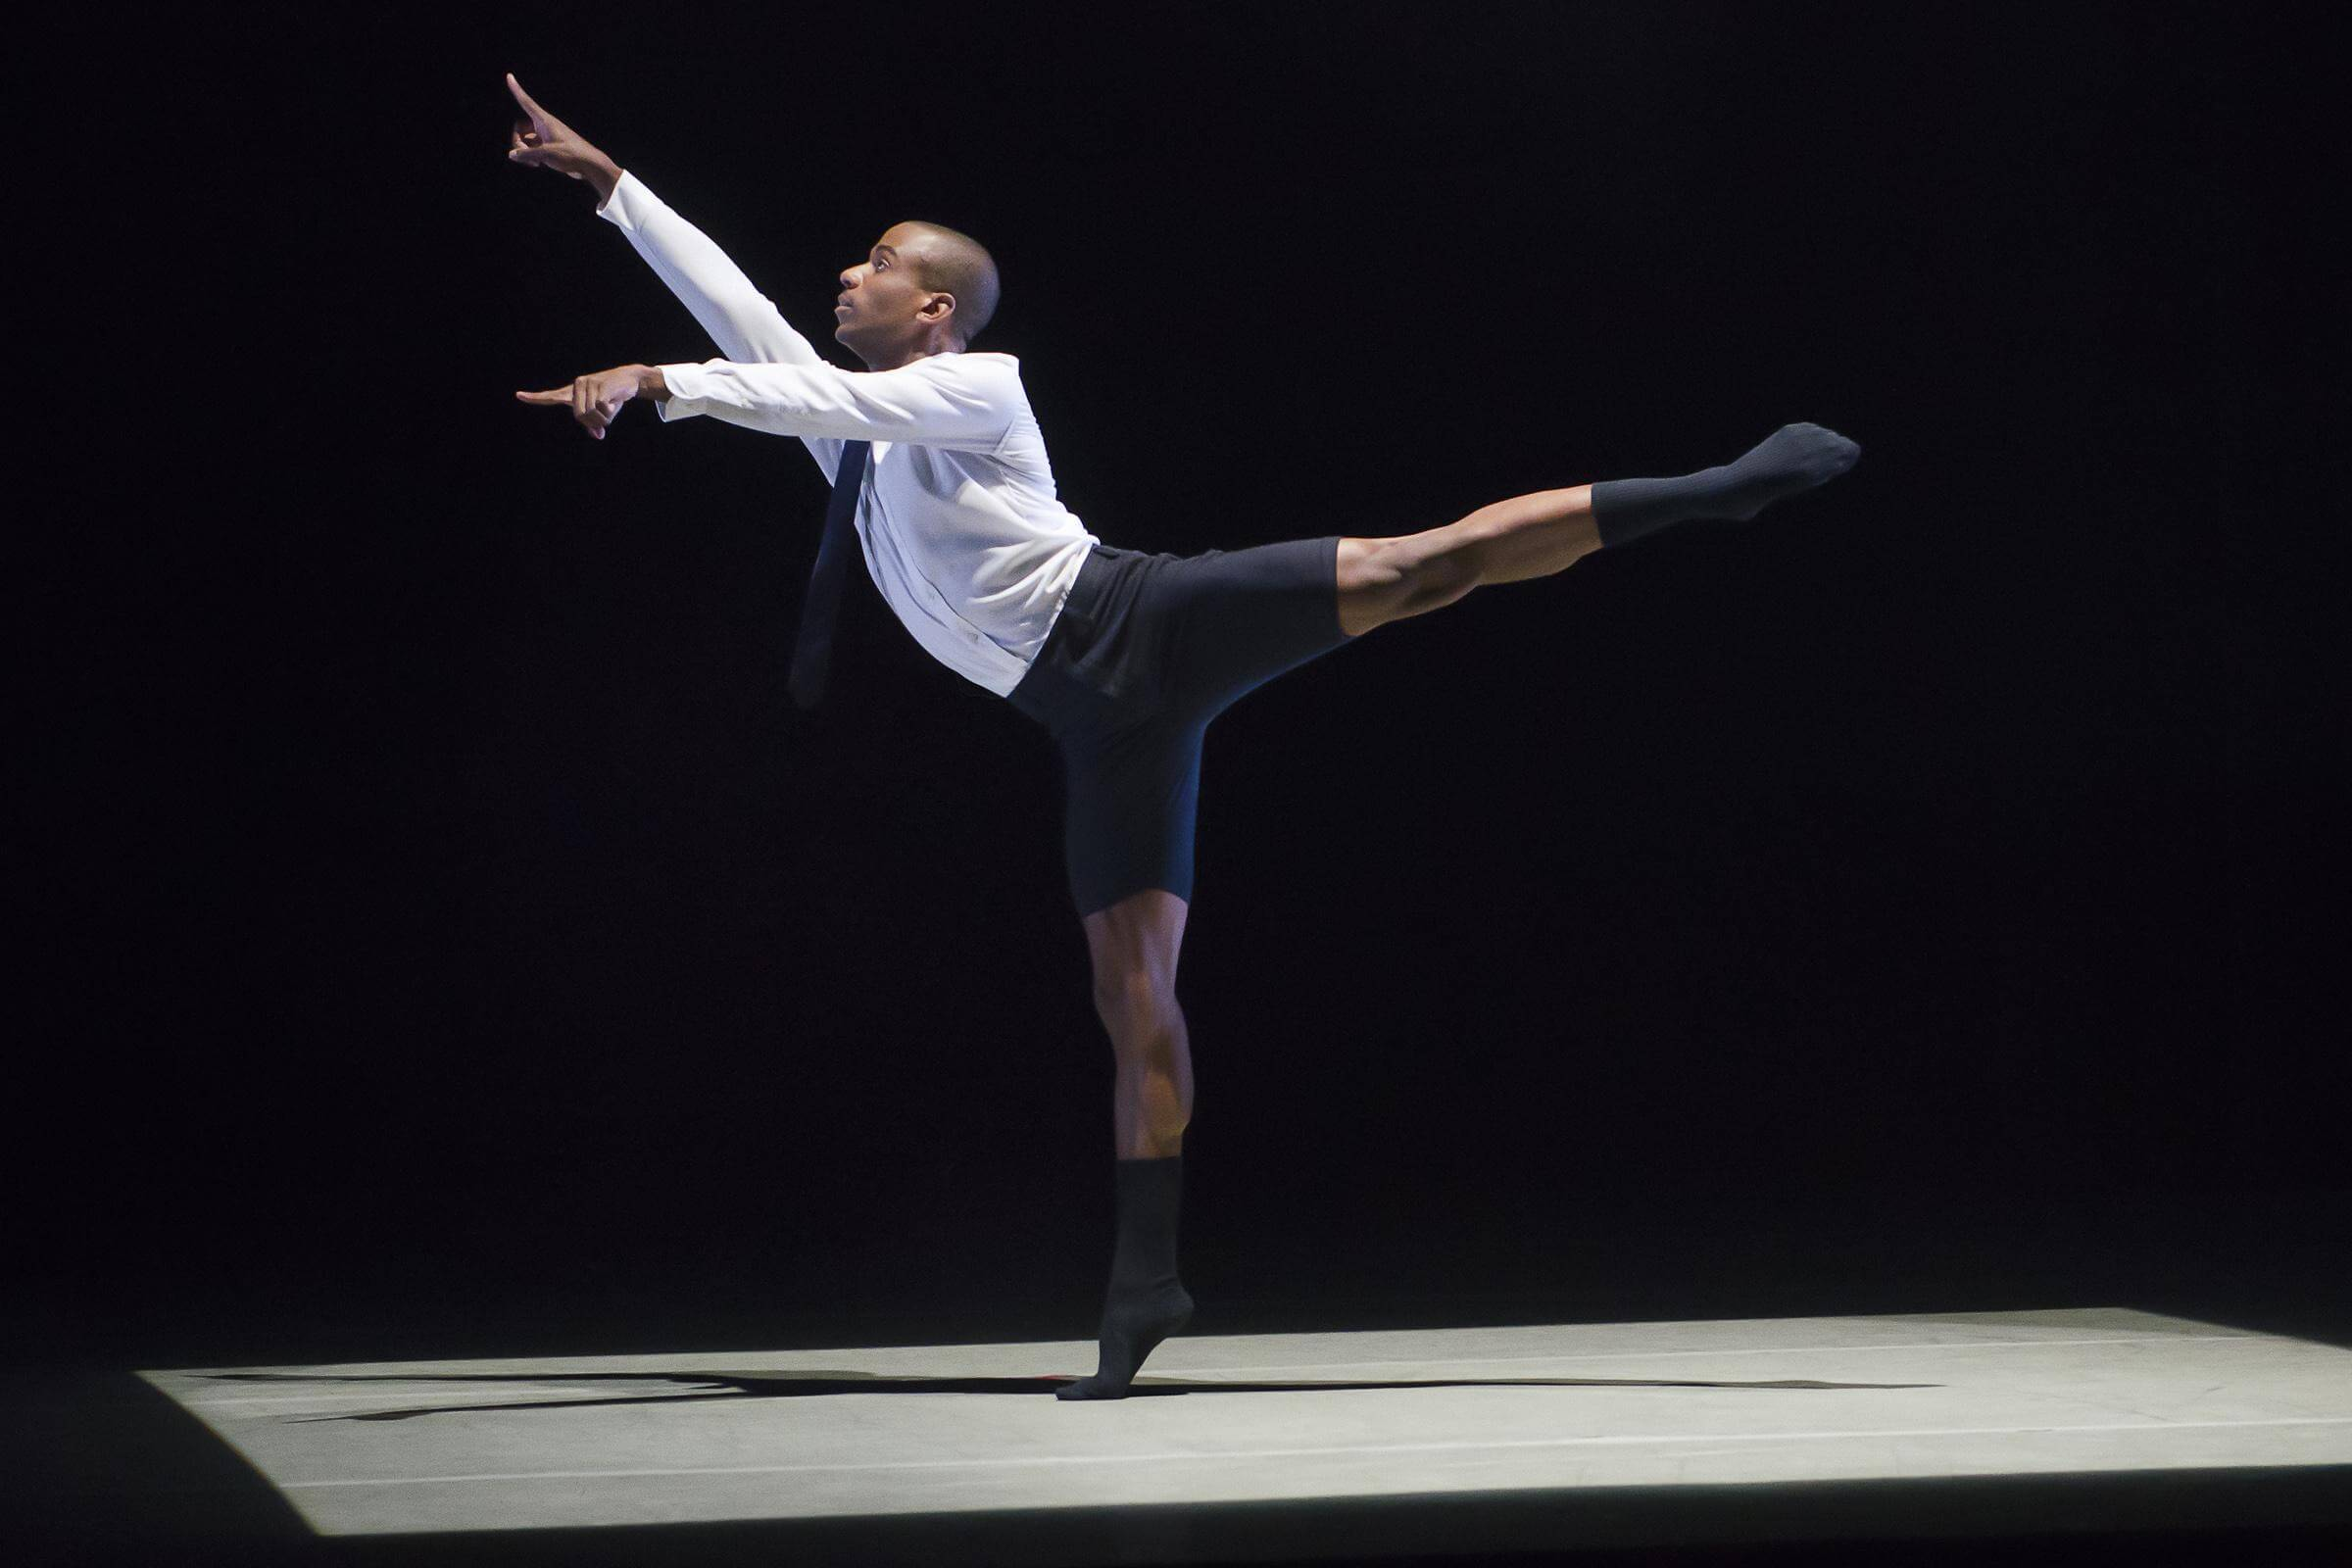 ailey single guys Tickets start at $15 for basetrack live $20 for ailey ii and $45 each for the piano guys and cabaret tickets will be available through ticket omaha online at ticketomahacom , by phone at 4023450606 or in person at the ticket omaha office inside the holland performing arts center at 13th and douglas streets.